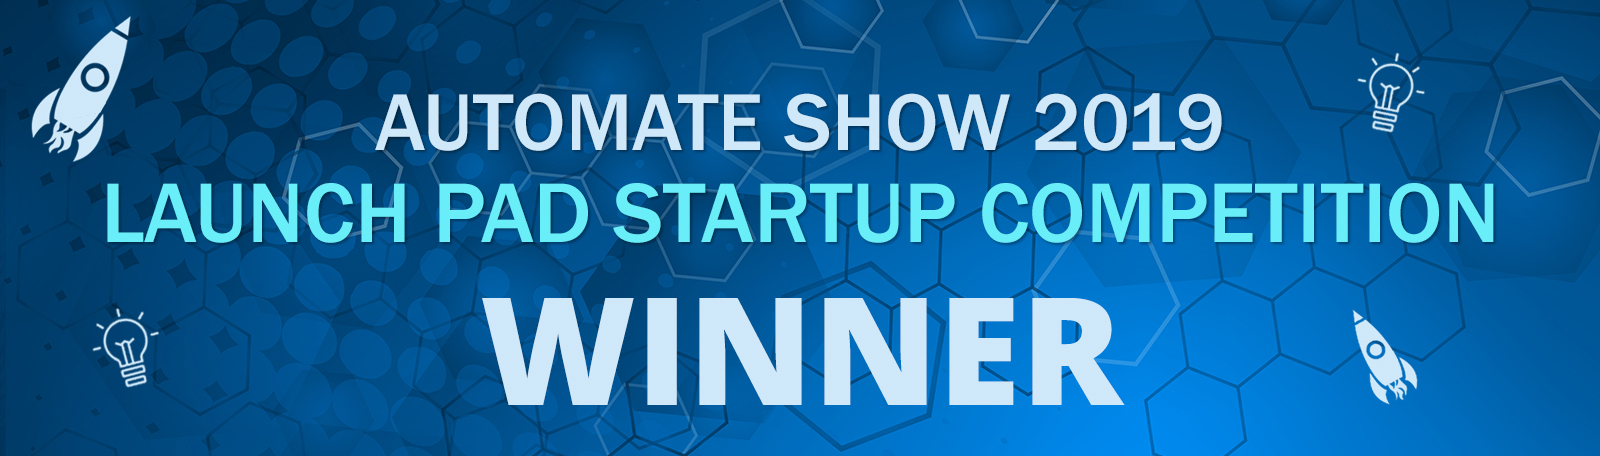 Automate Show Launch Pad Startup Competition Winners